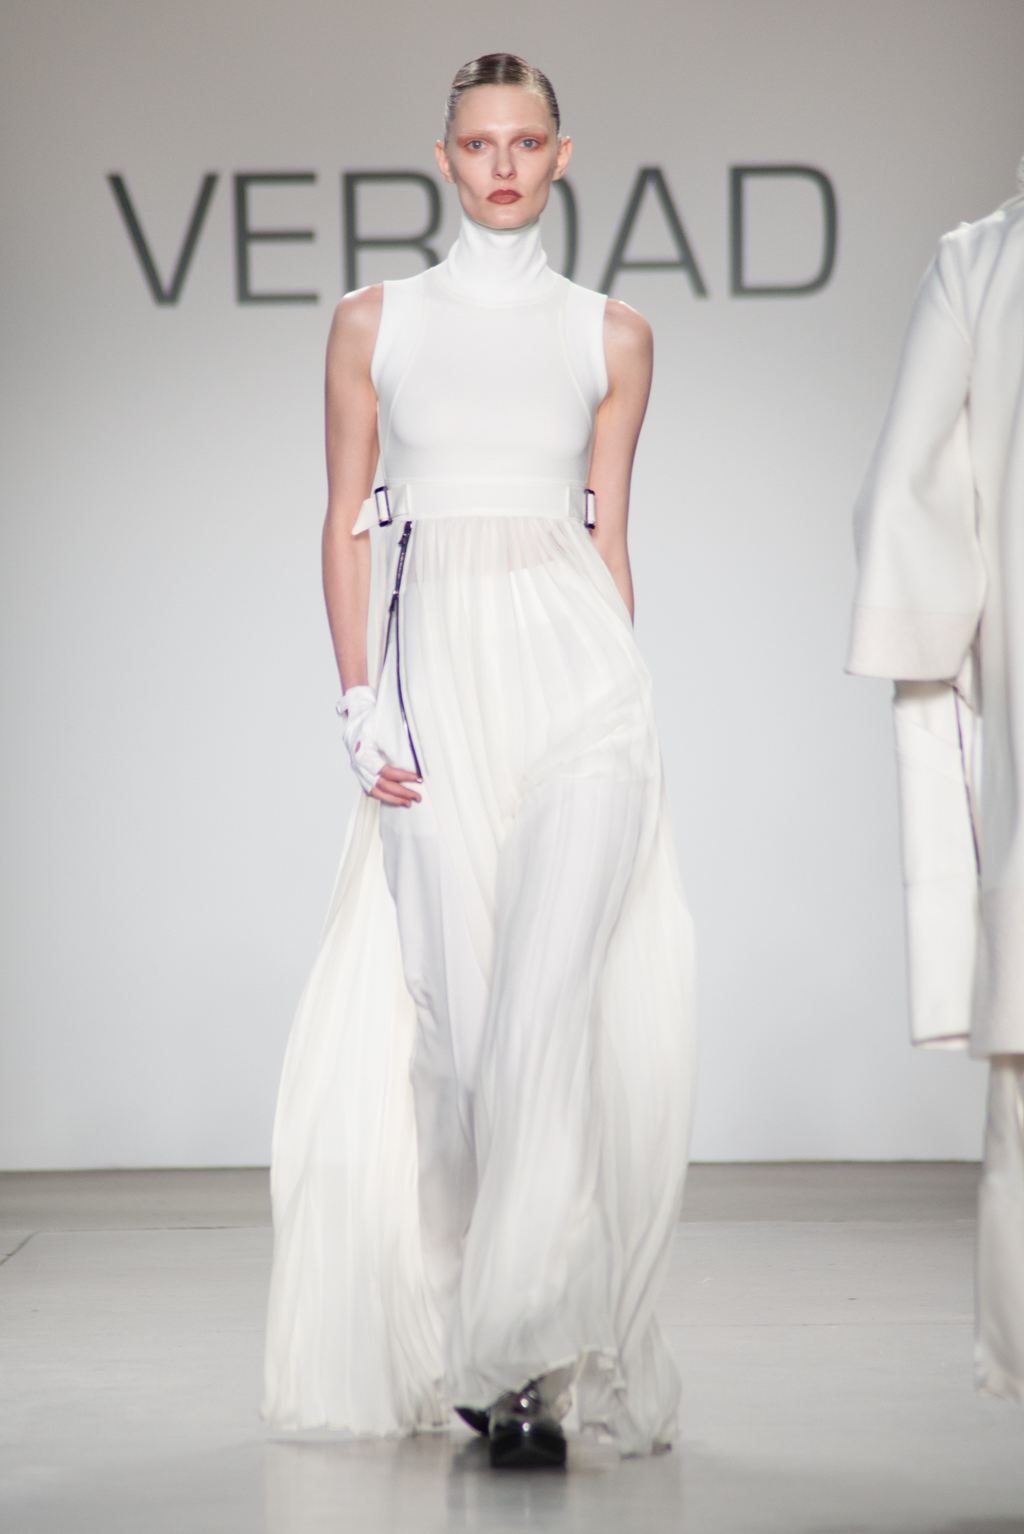 NYFW AW17 - Verdad - Stephanie BC - The Upcoming - 2